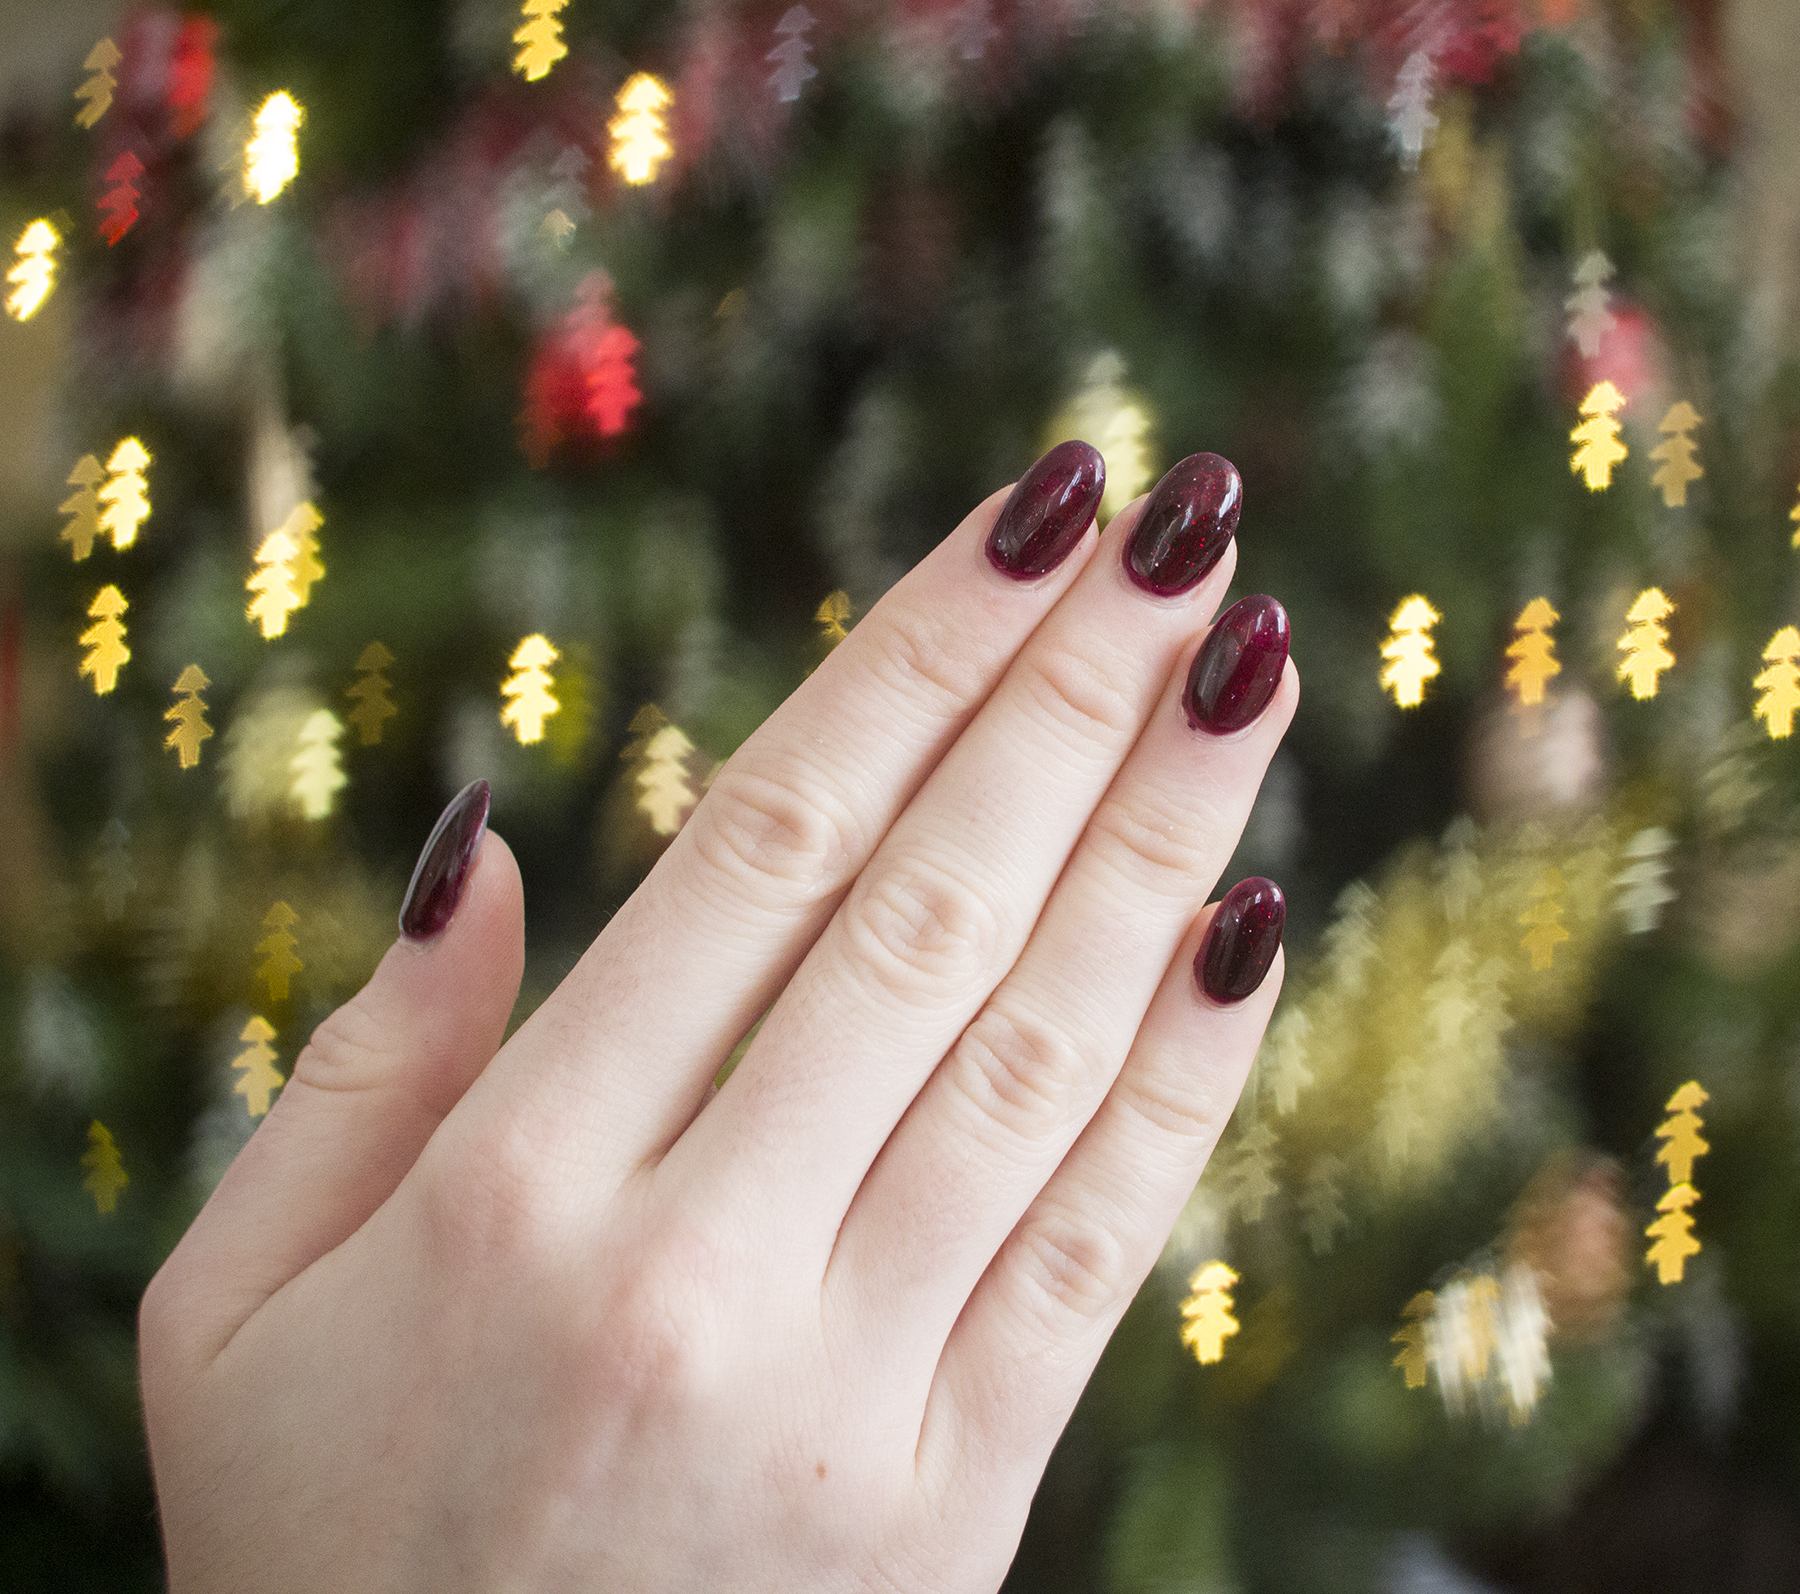 4 Reasons Why Acrylic Nails Are More Effort Than They're Worth // #17 of Blogmas '16